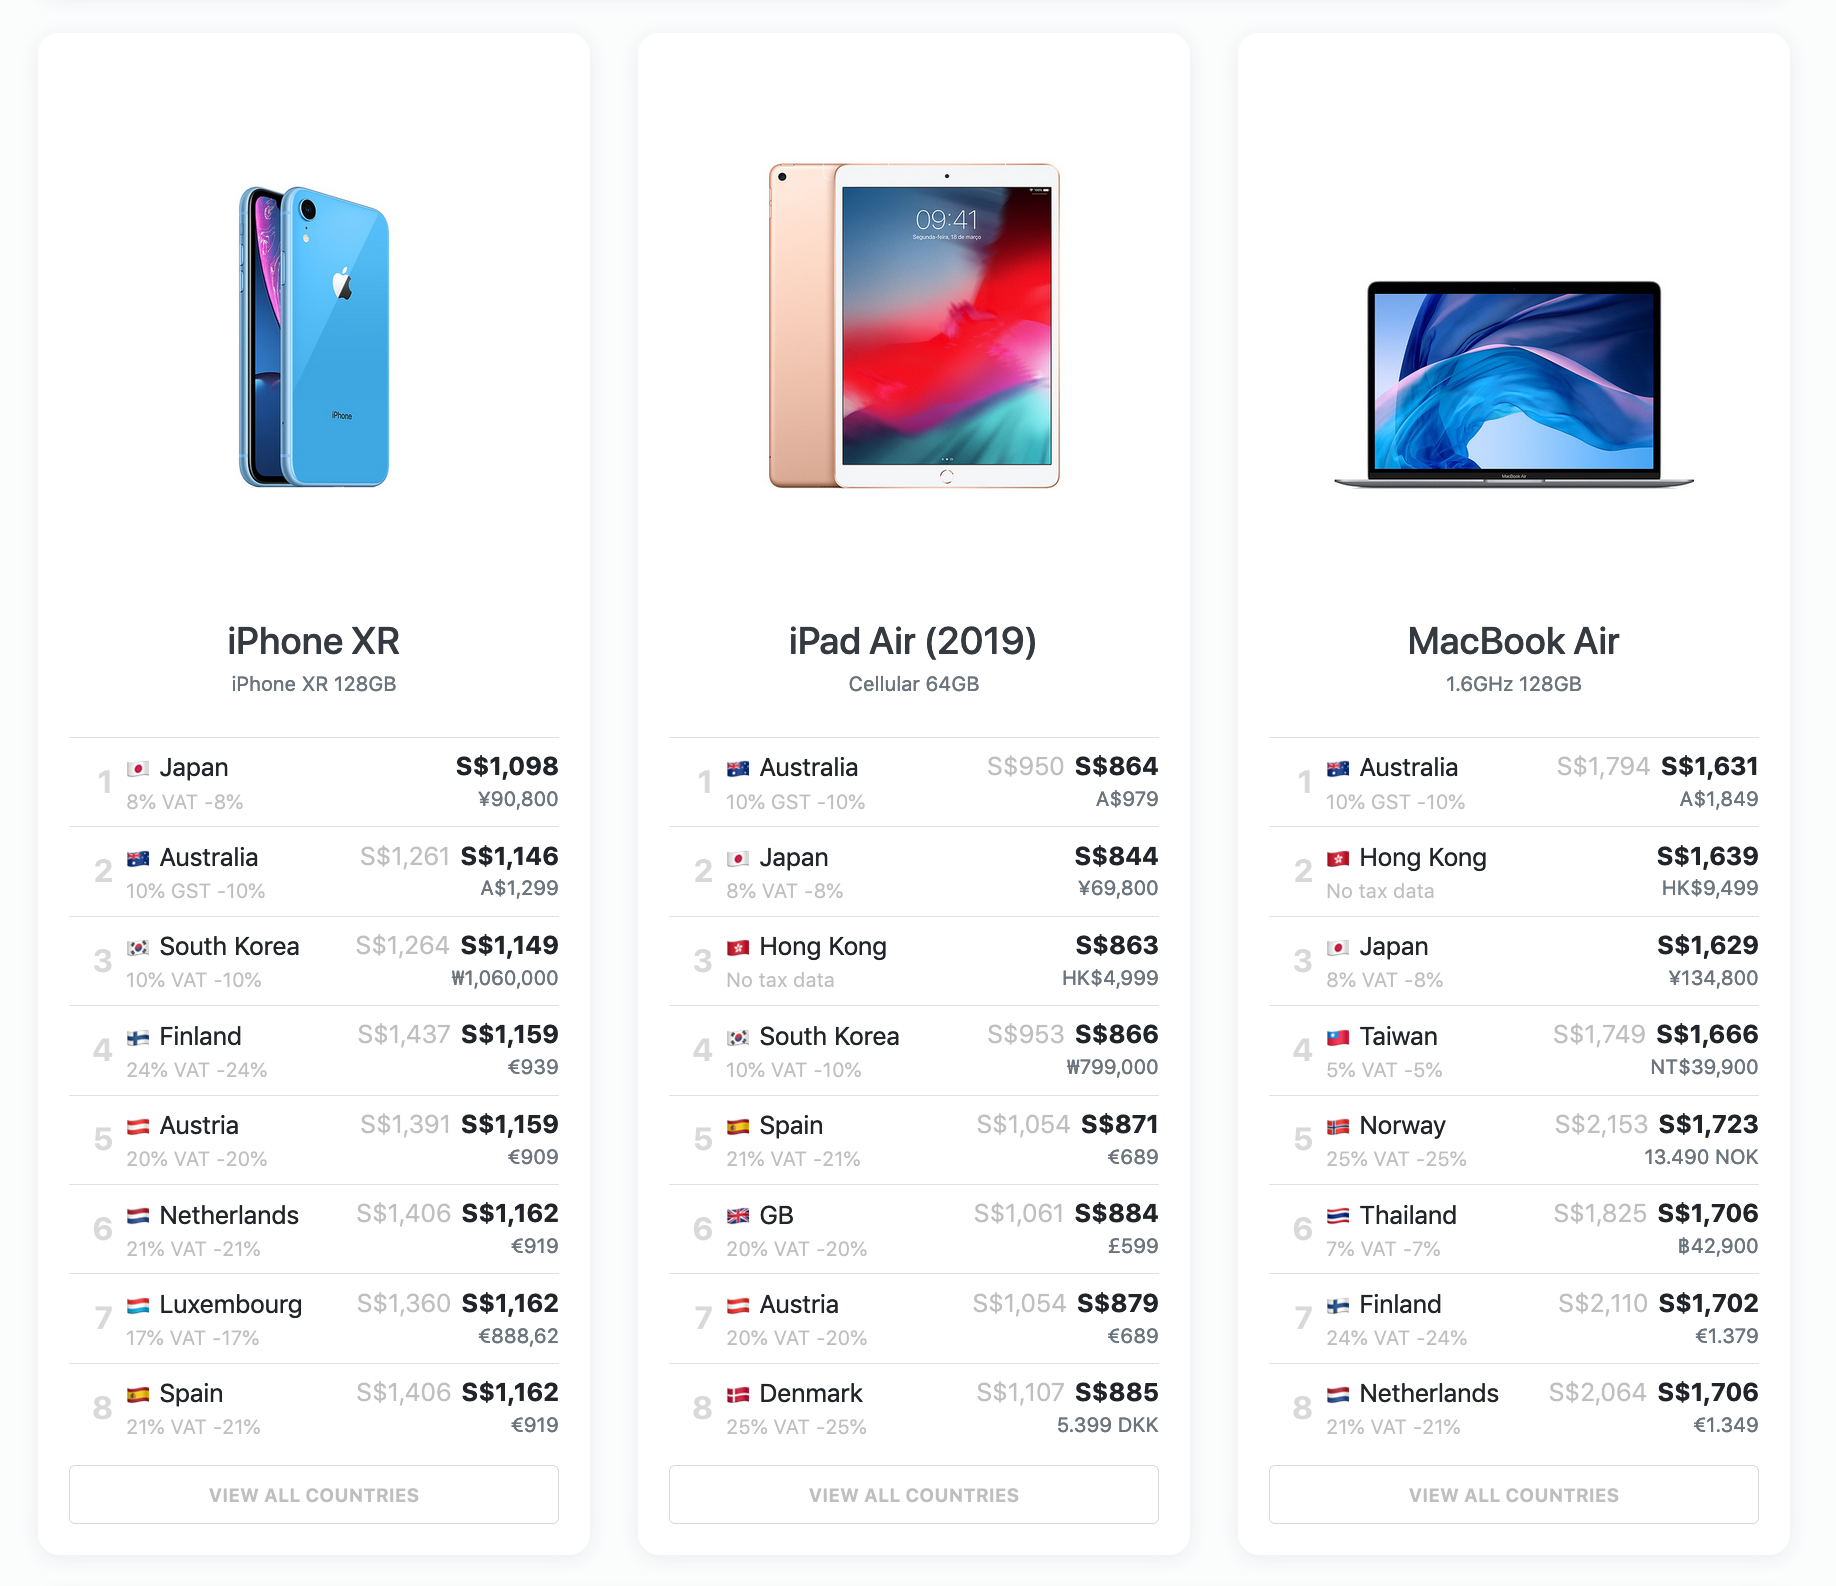 In which country are Apple products cheaper? - Quora